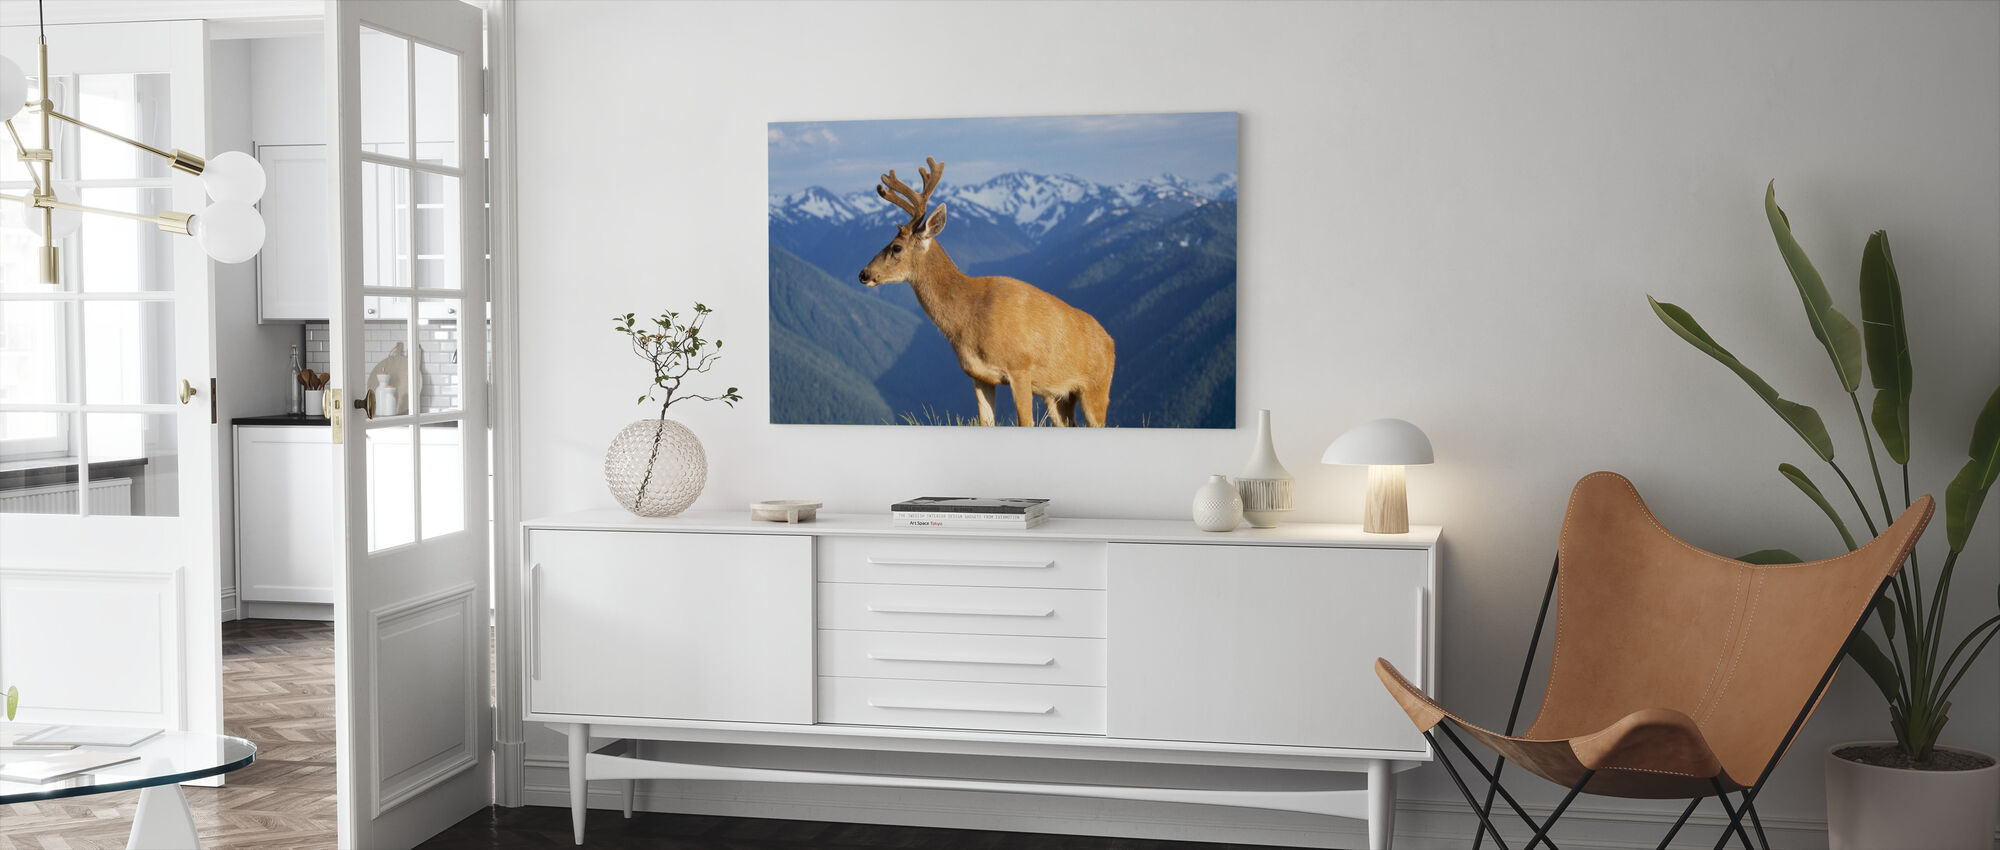 Reindeer and Mountains - Canvas print - Living Room